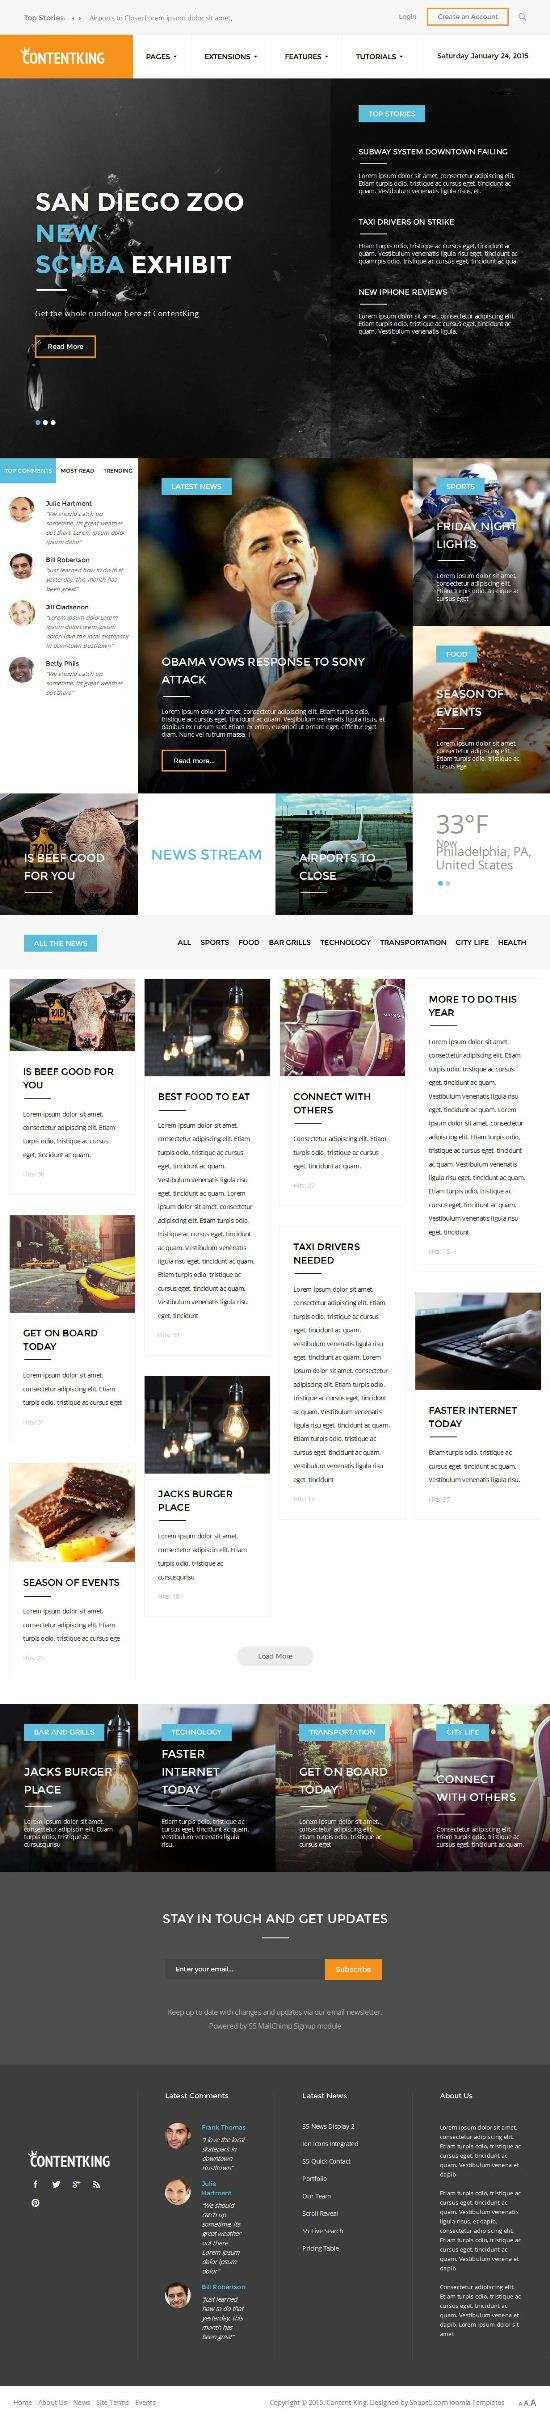 content king shape5 joomla - Content King Joomla Template